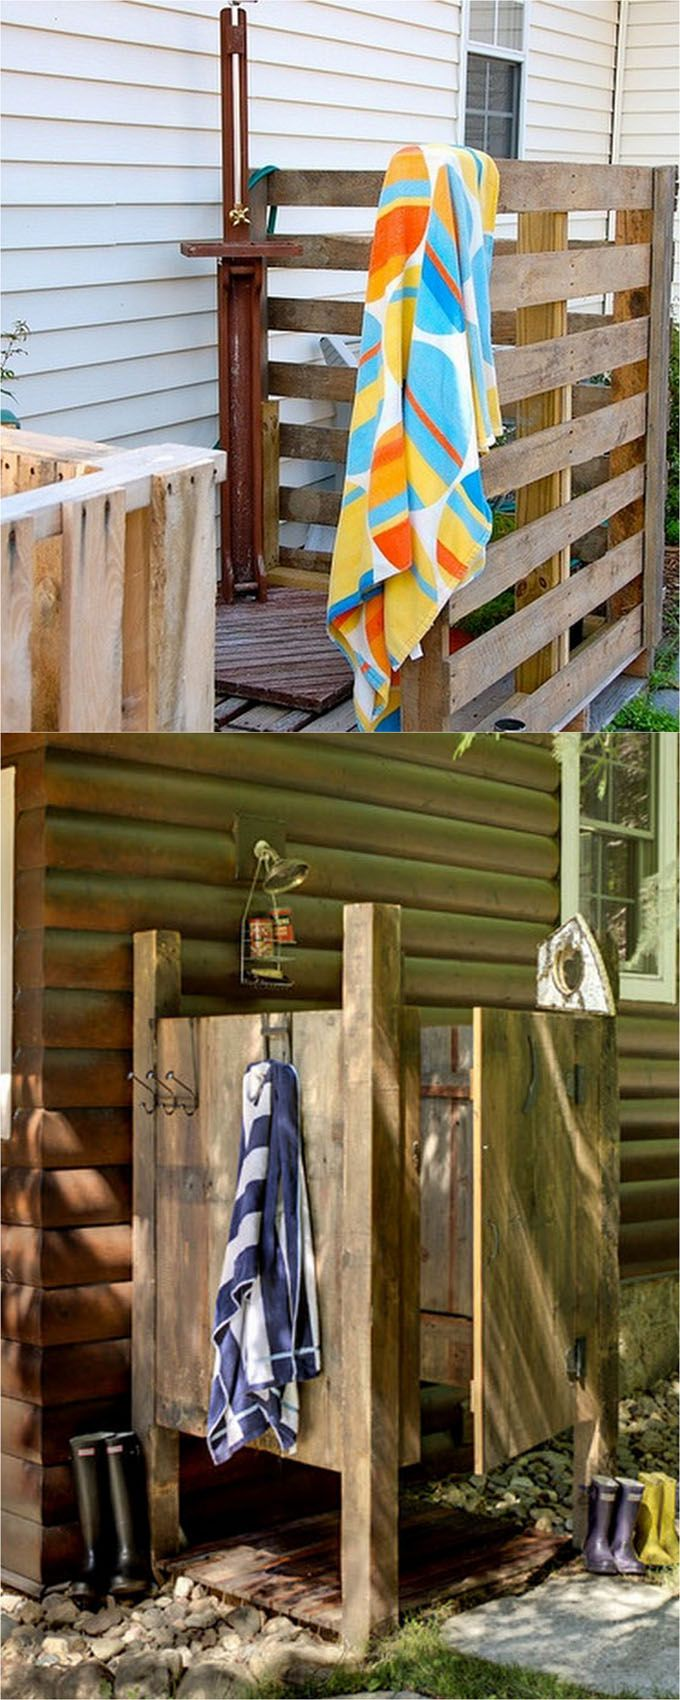 32 Creative Diy Outdoor Showers How To Build Enclosures With Simple Materials Best Shower Fixtures Designore